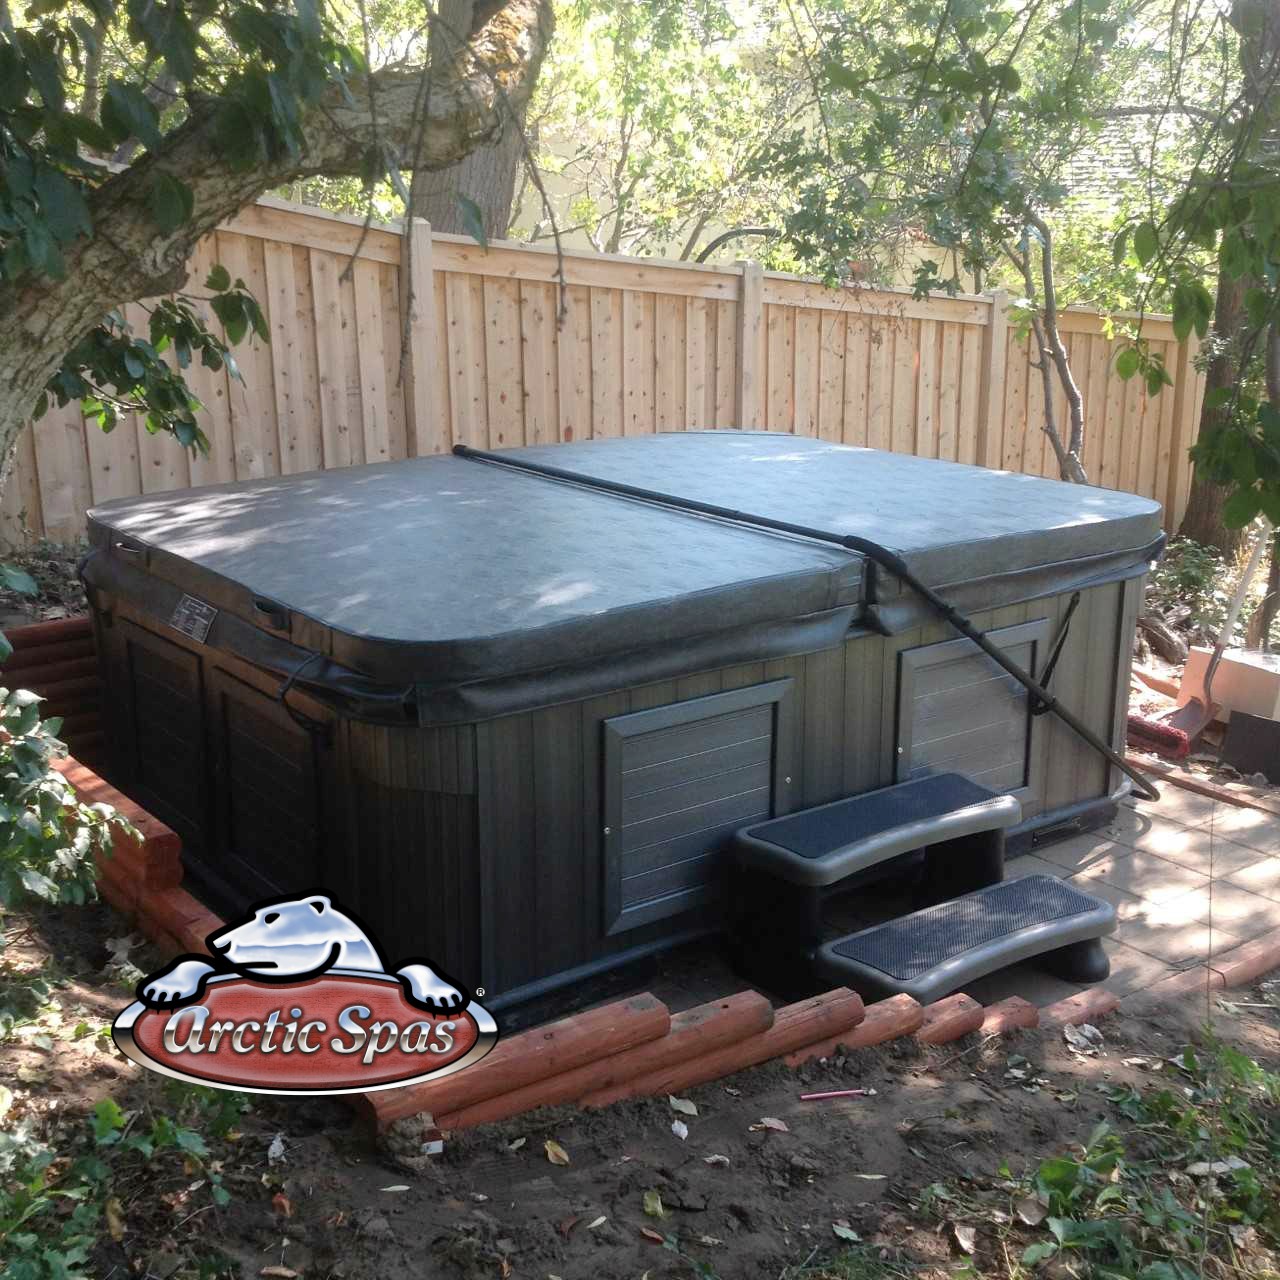 Knoch Family's new Arctic Spa Summit XL